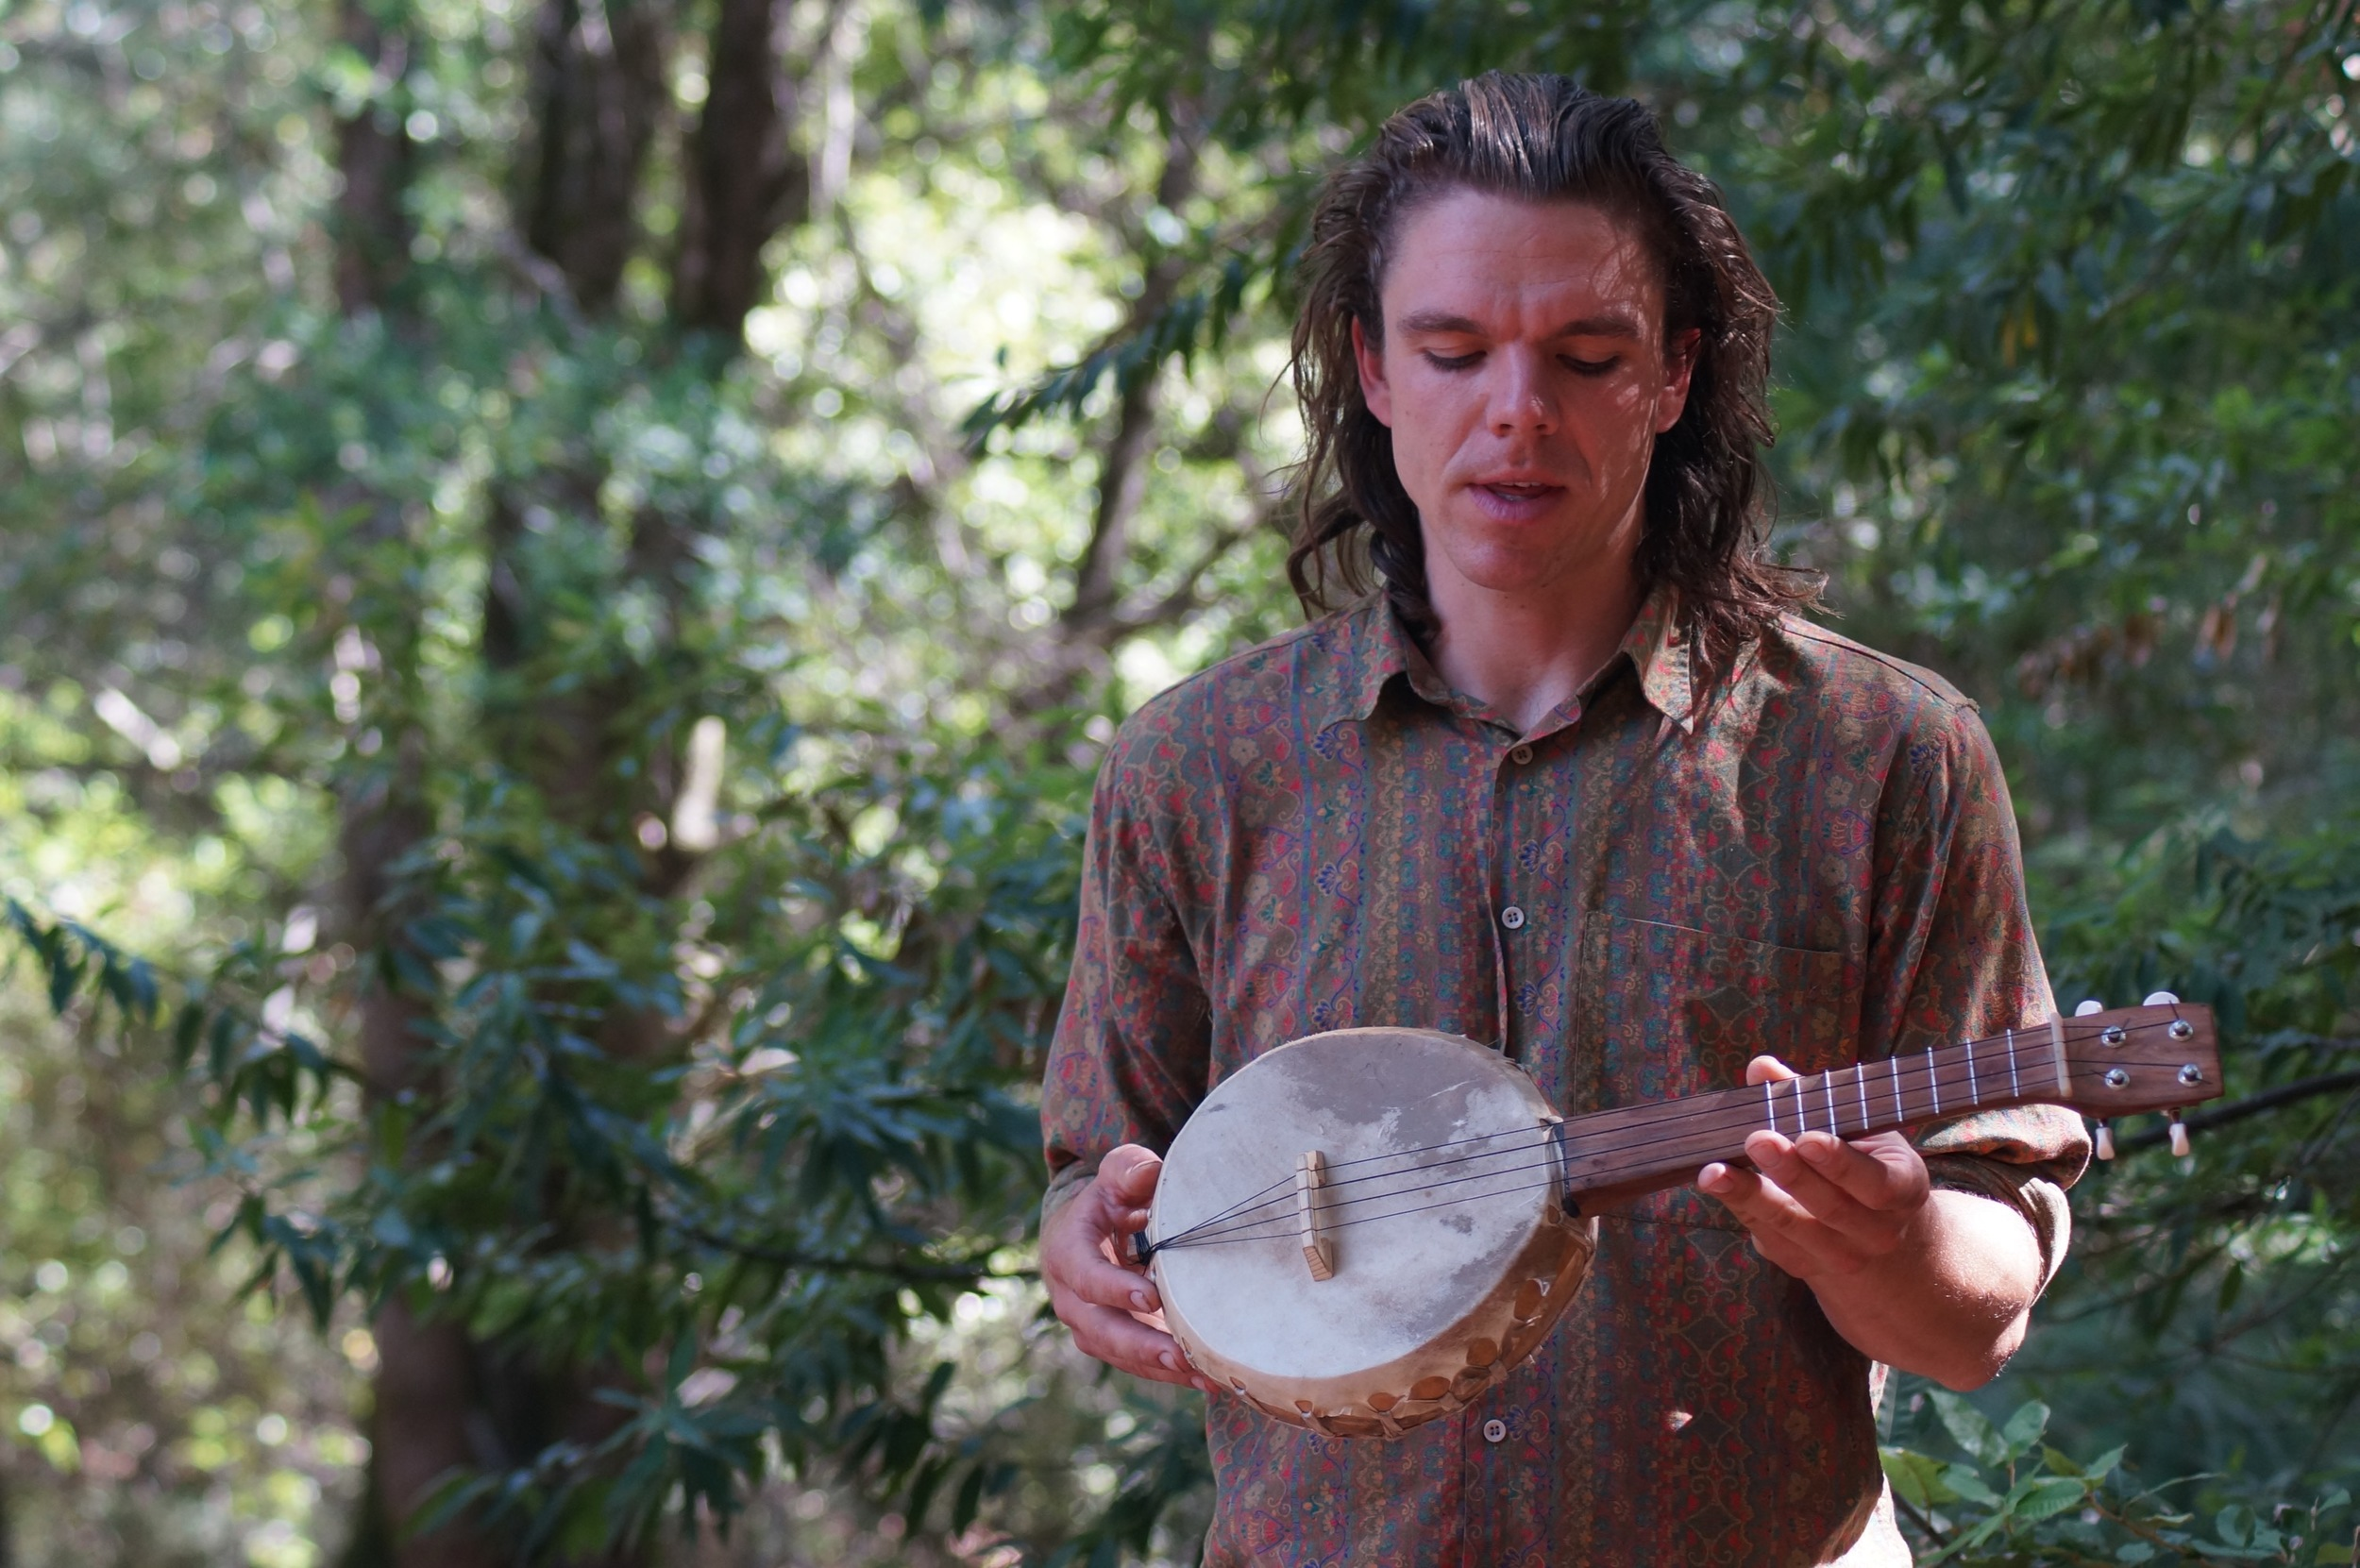 The talented Ira showing off his gourd and rawhide ukelele.  Video here .